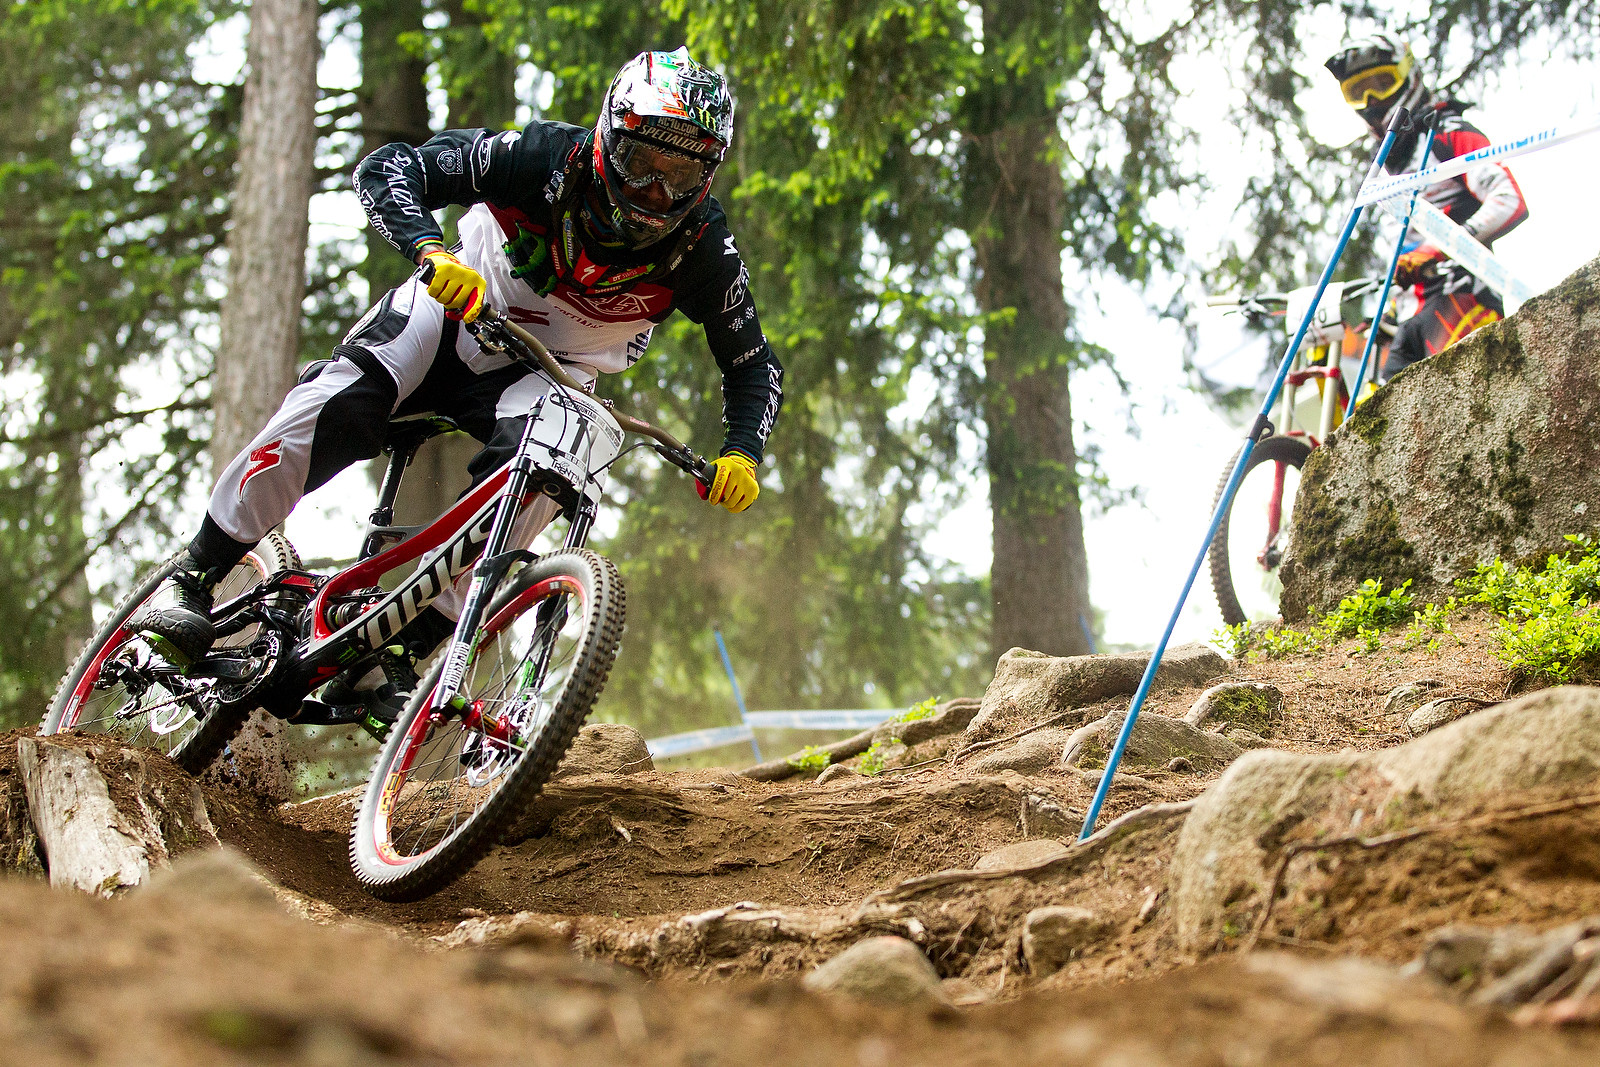 Sam Hill on the new S-Works Demo at Val di Sole - 2012 UCI World Cup, Val di Sole Day 2 - Mountain Biking Pictures - Vital MTB